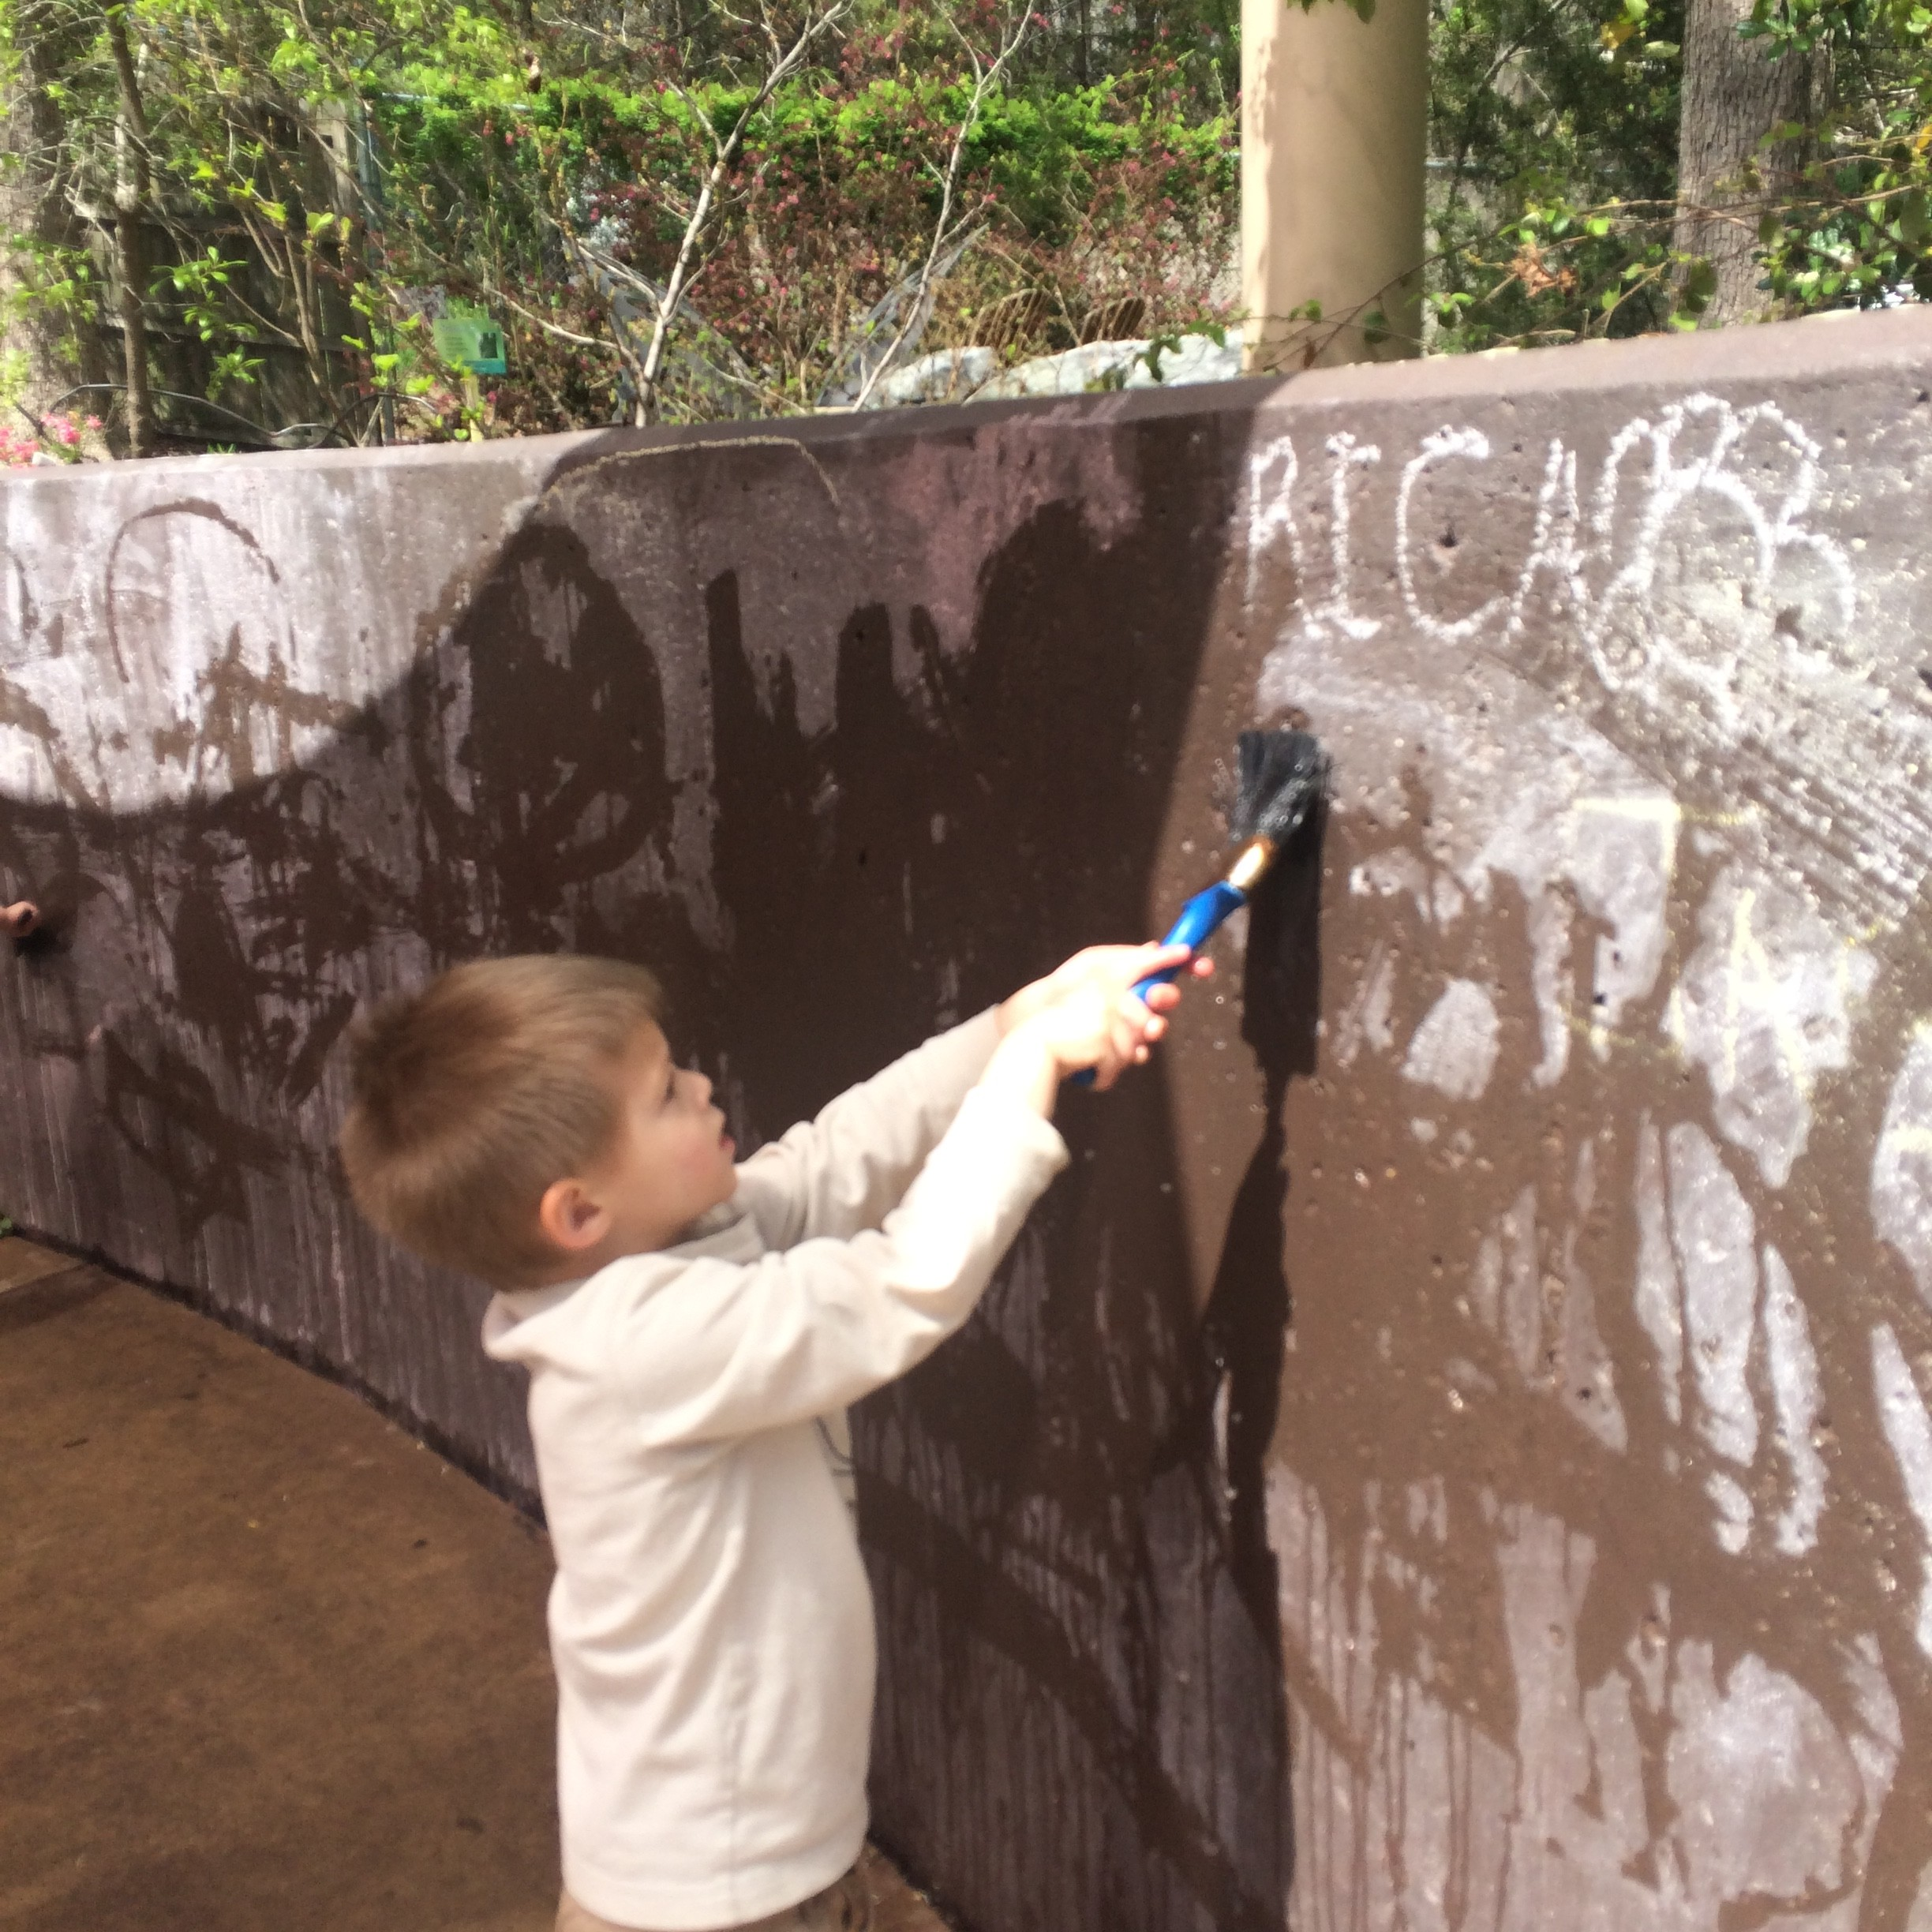 painting the walls with water